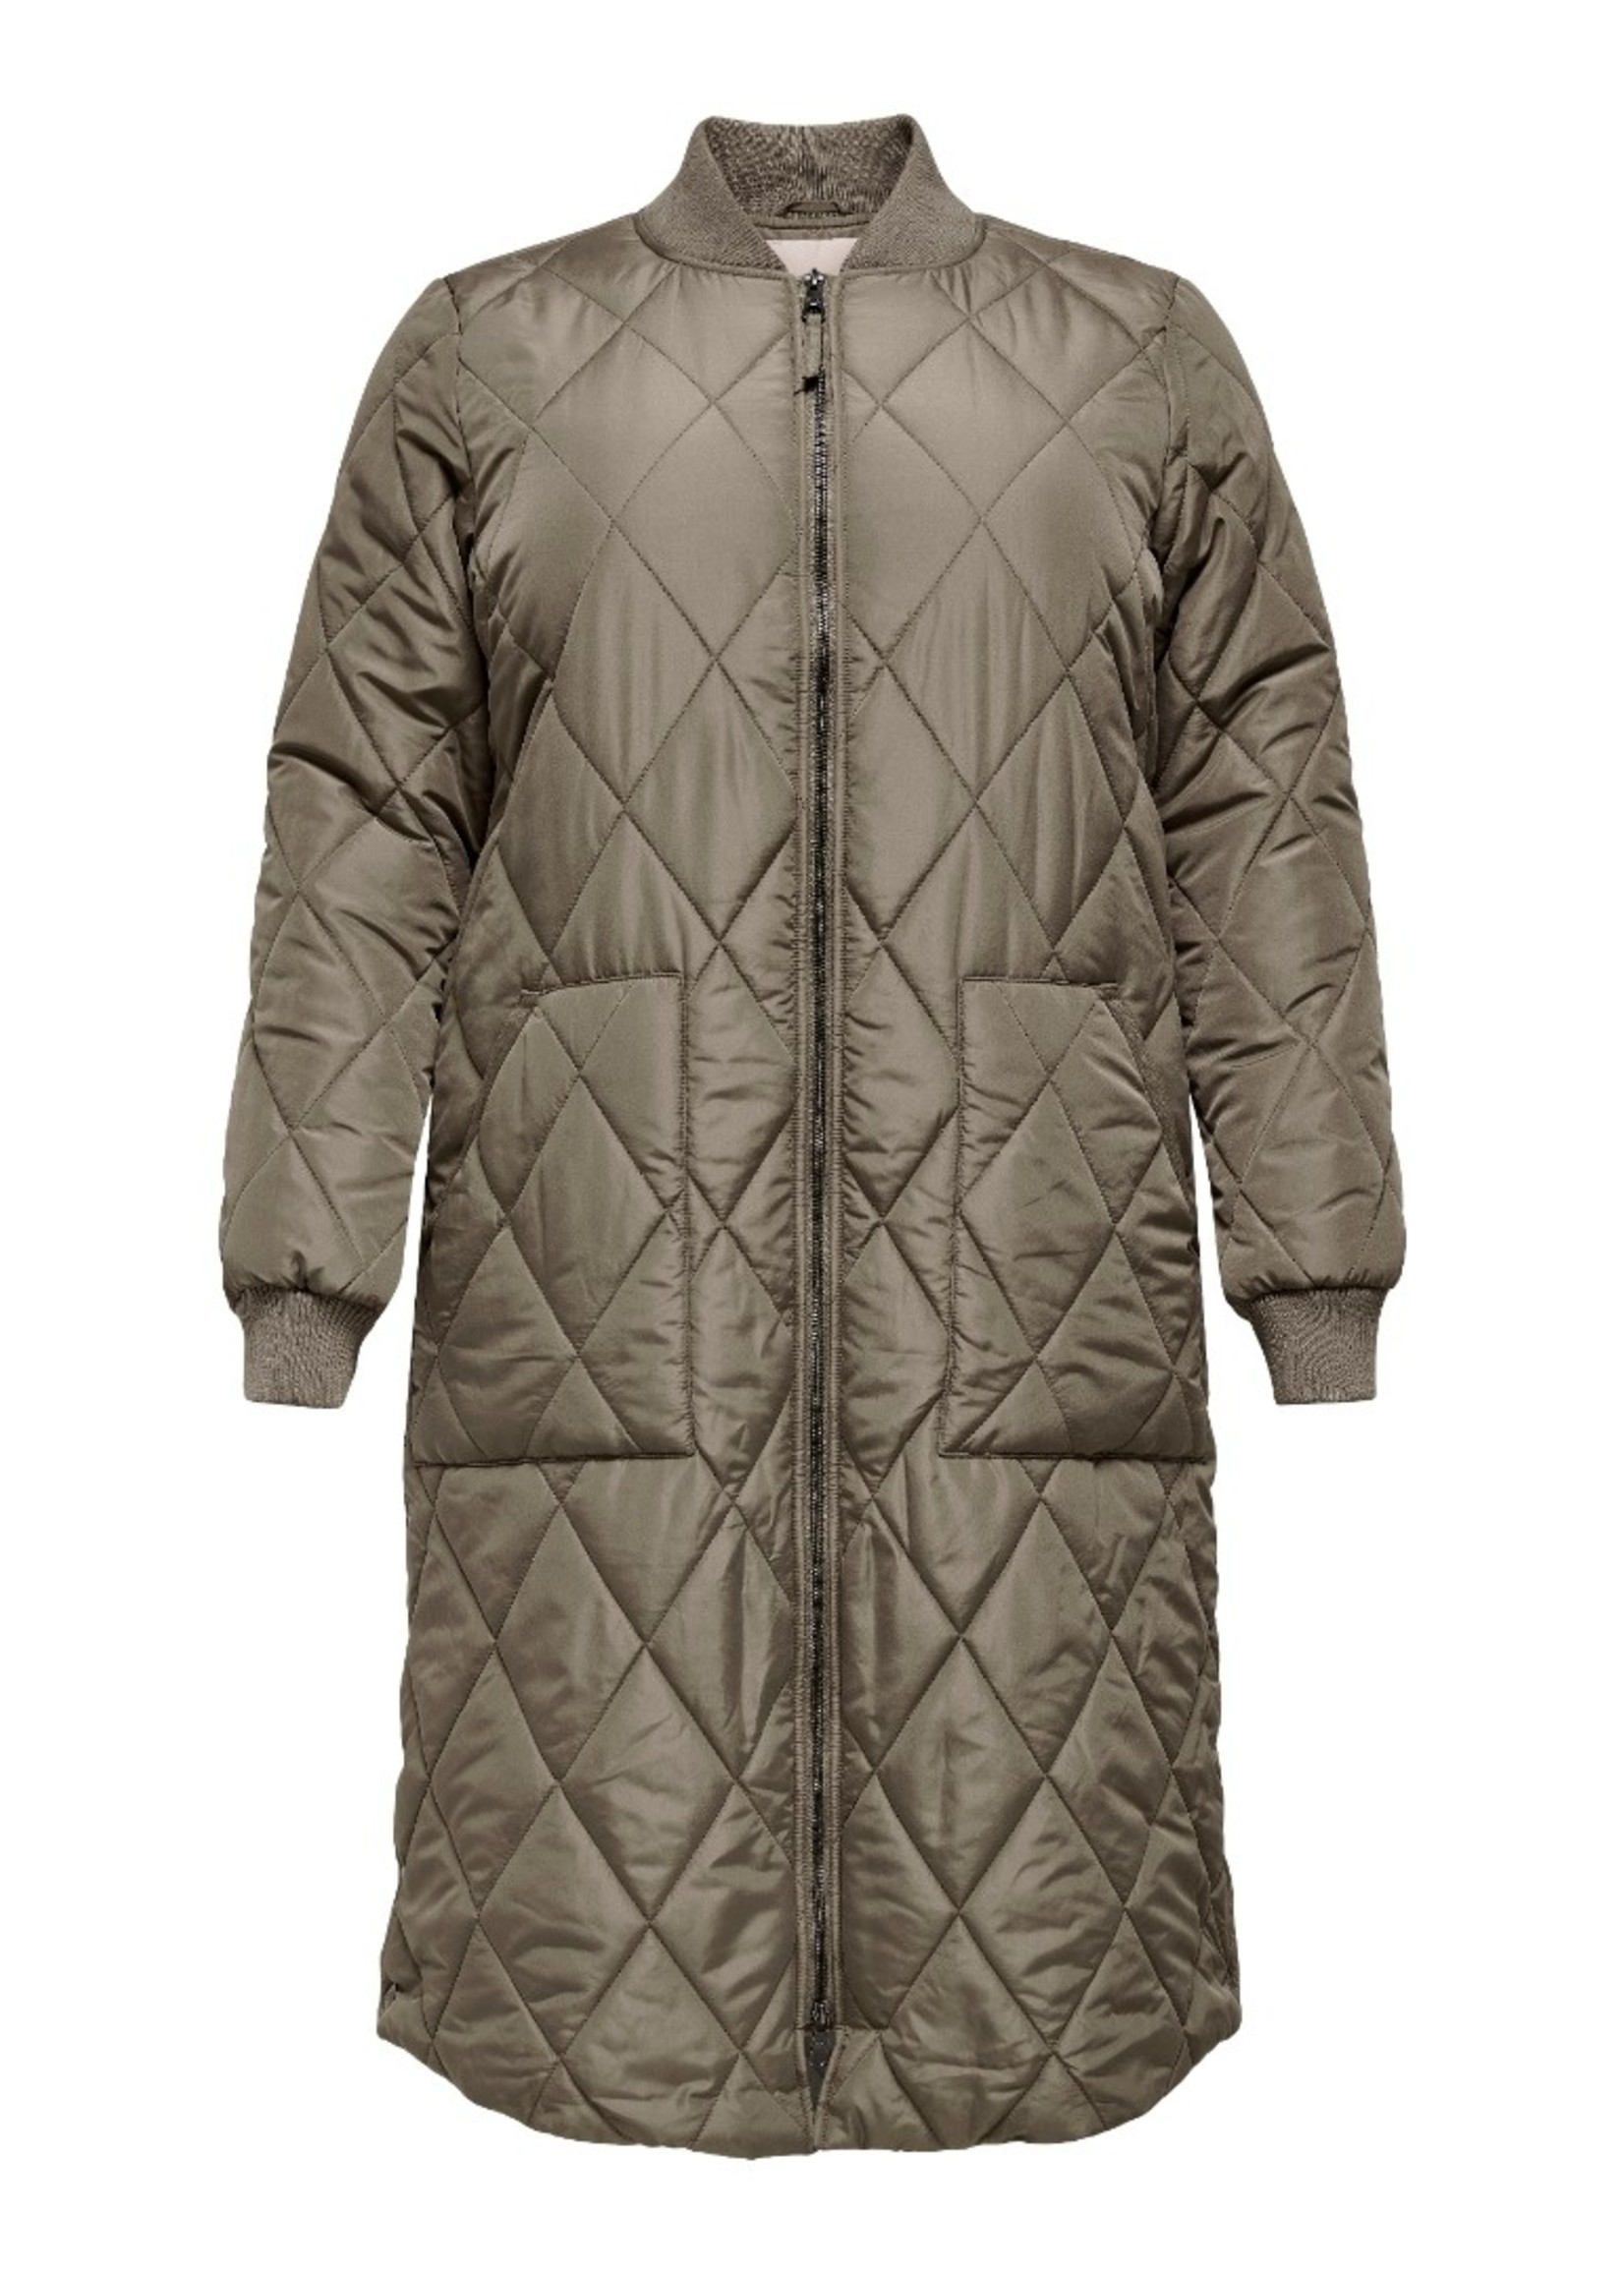 Only Carmakoma Only Carmakoma Quilted Jacket